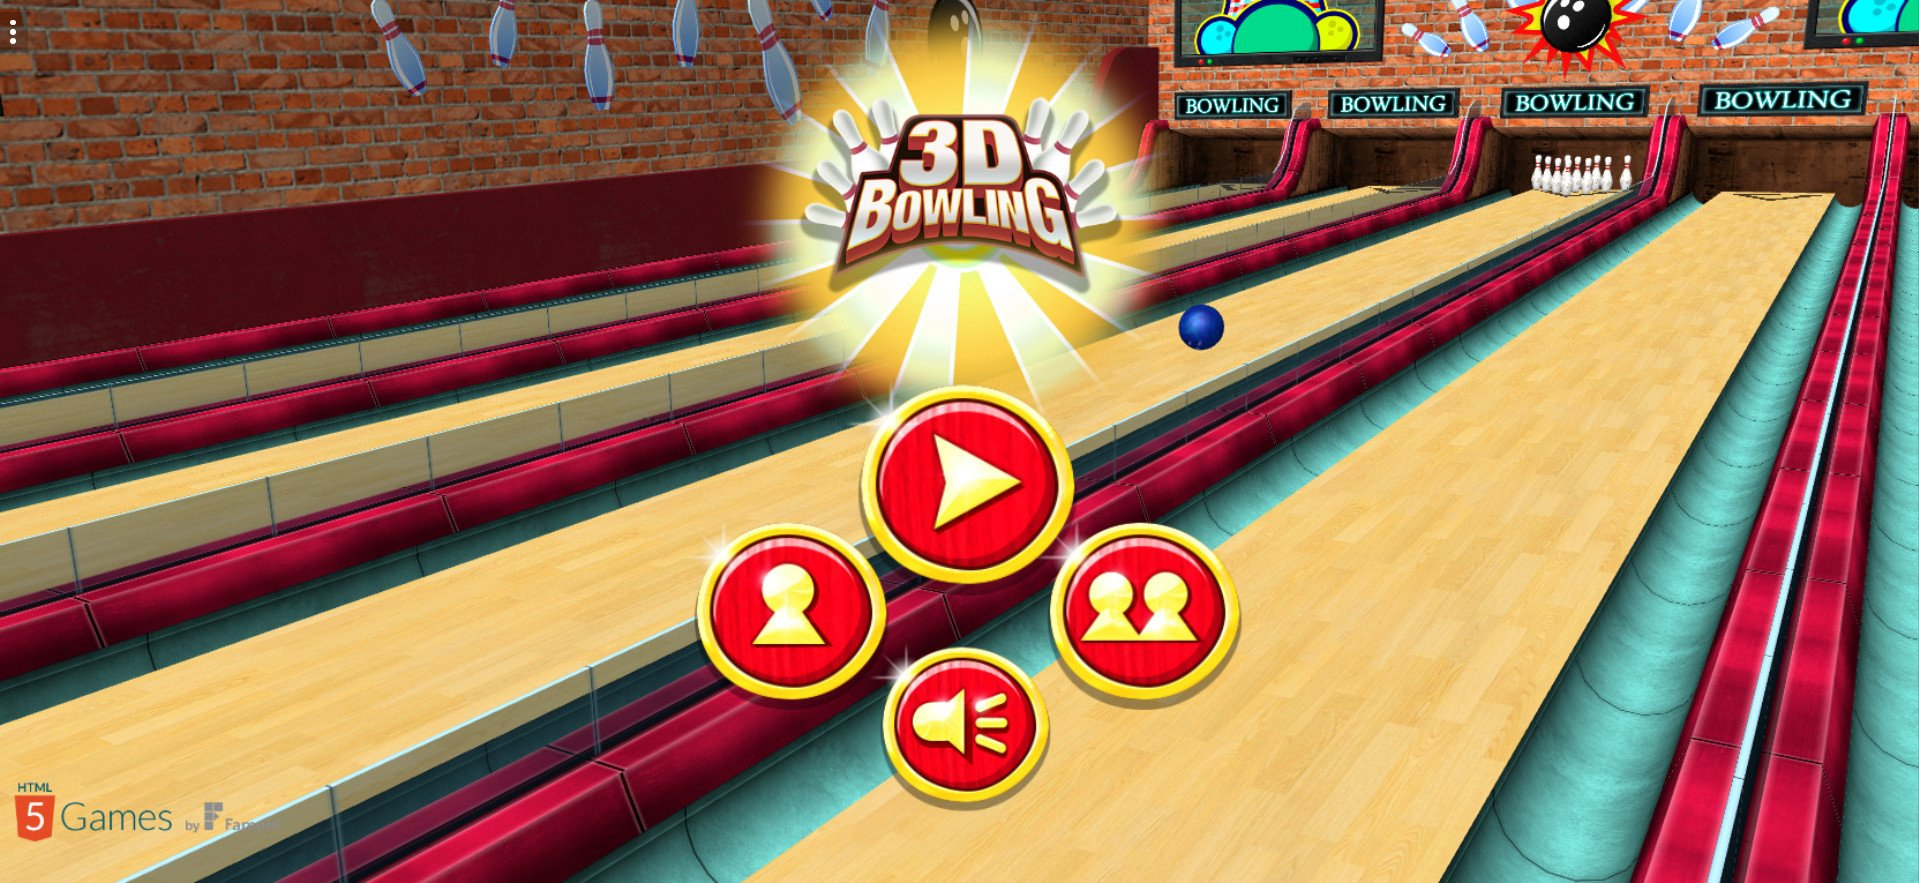 Image 3D Bowling: Strikes and Spares